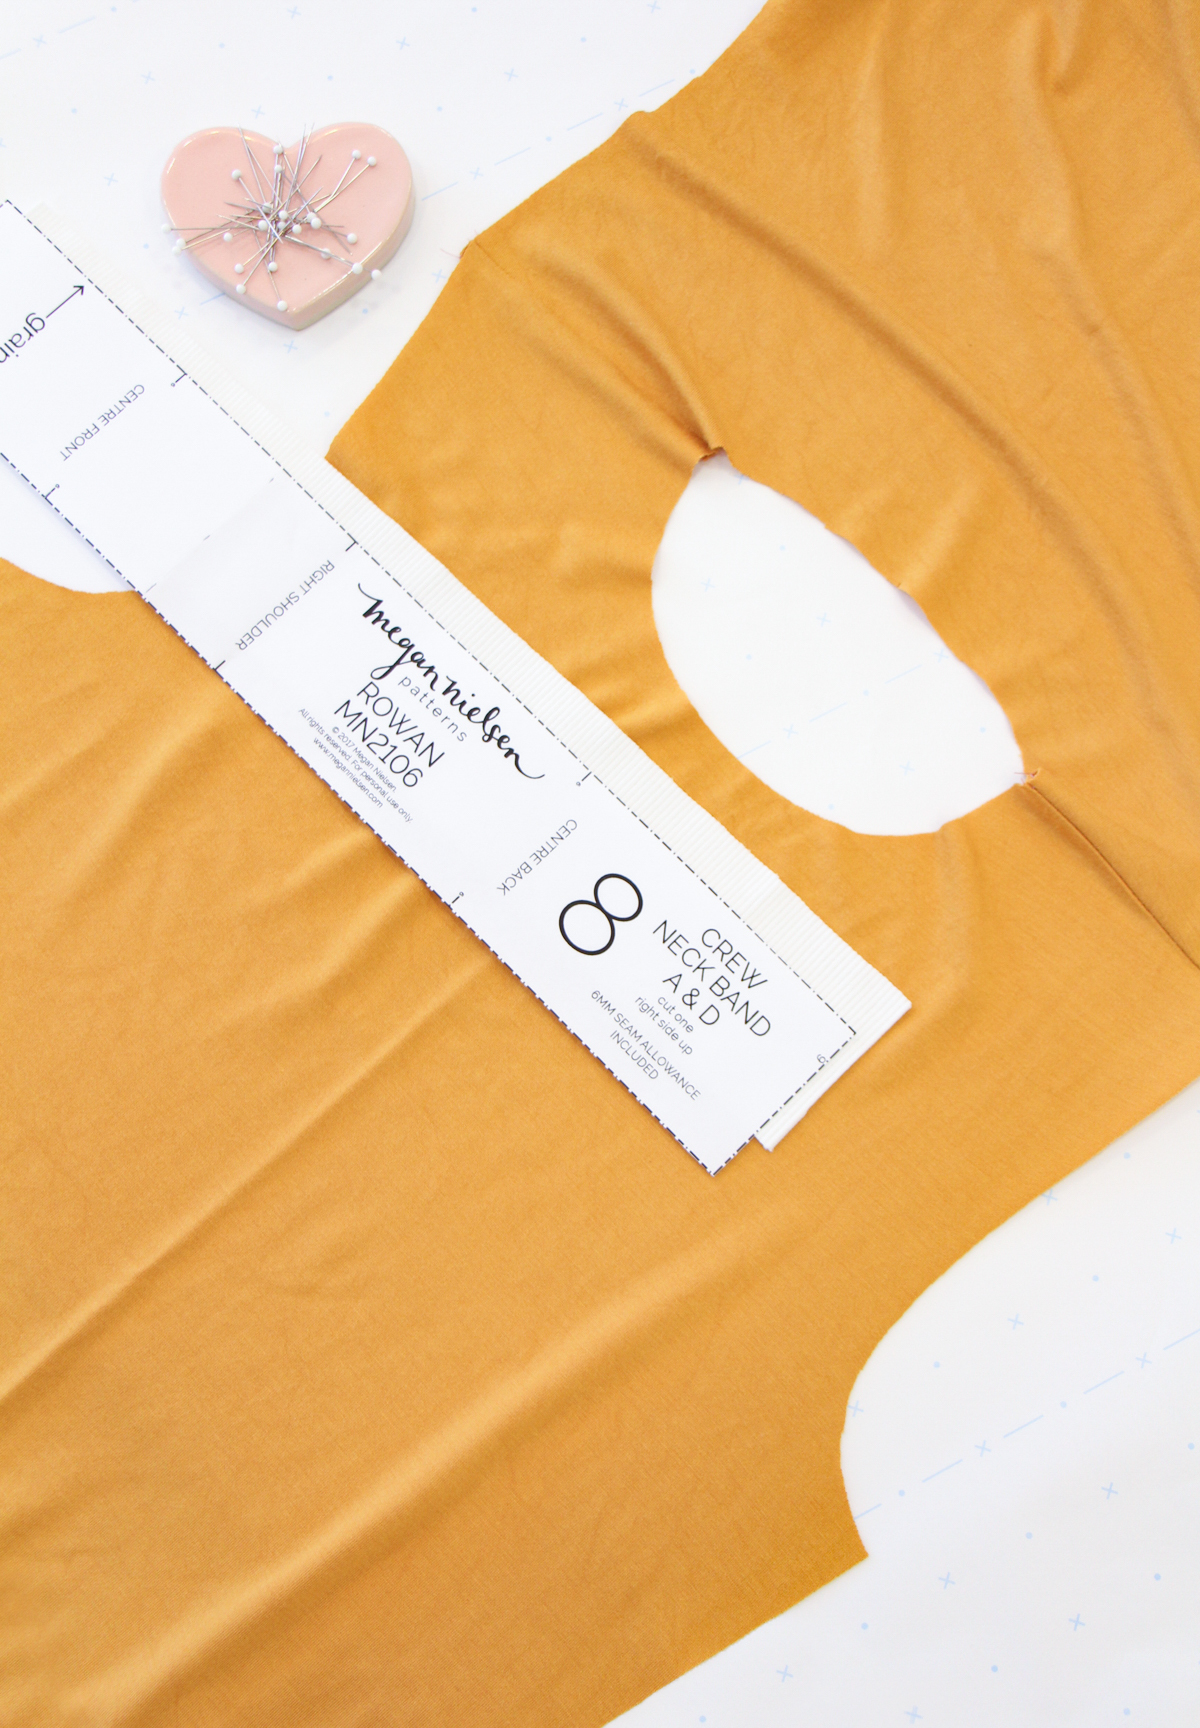 How To Make A Rowan Ringer Tee - Method 1 - The Neckband